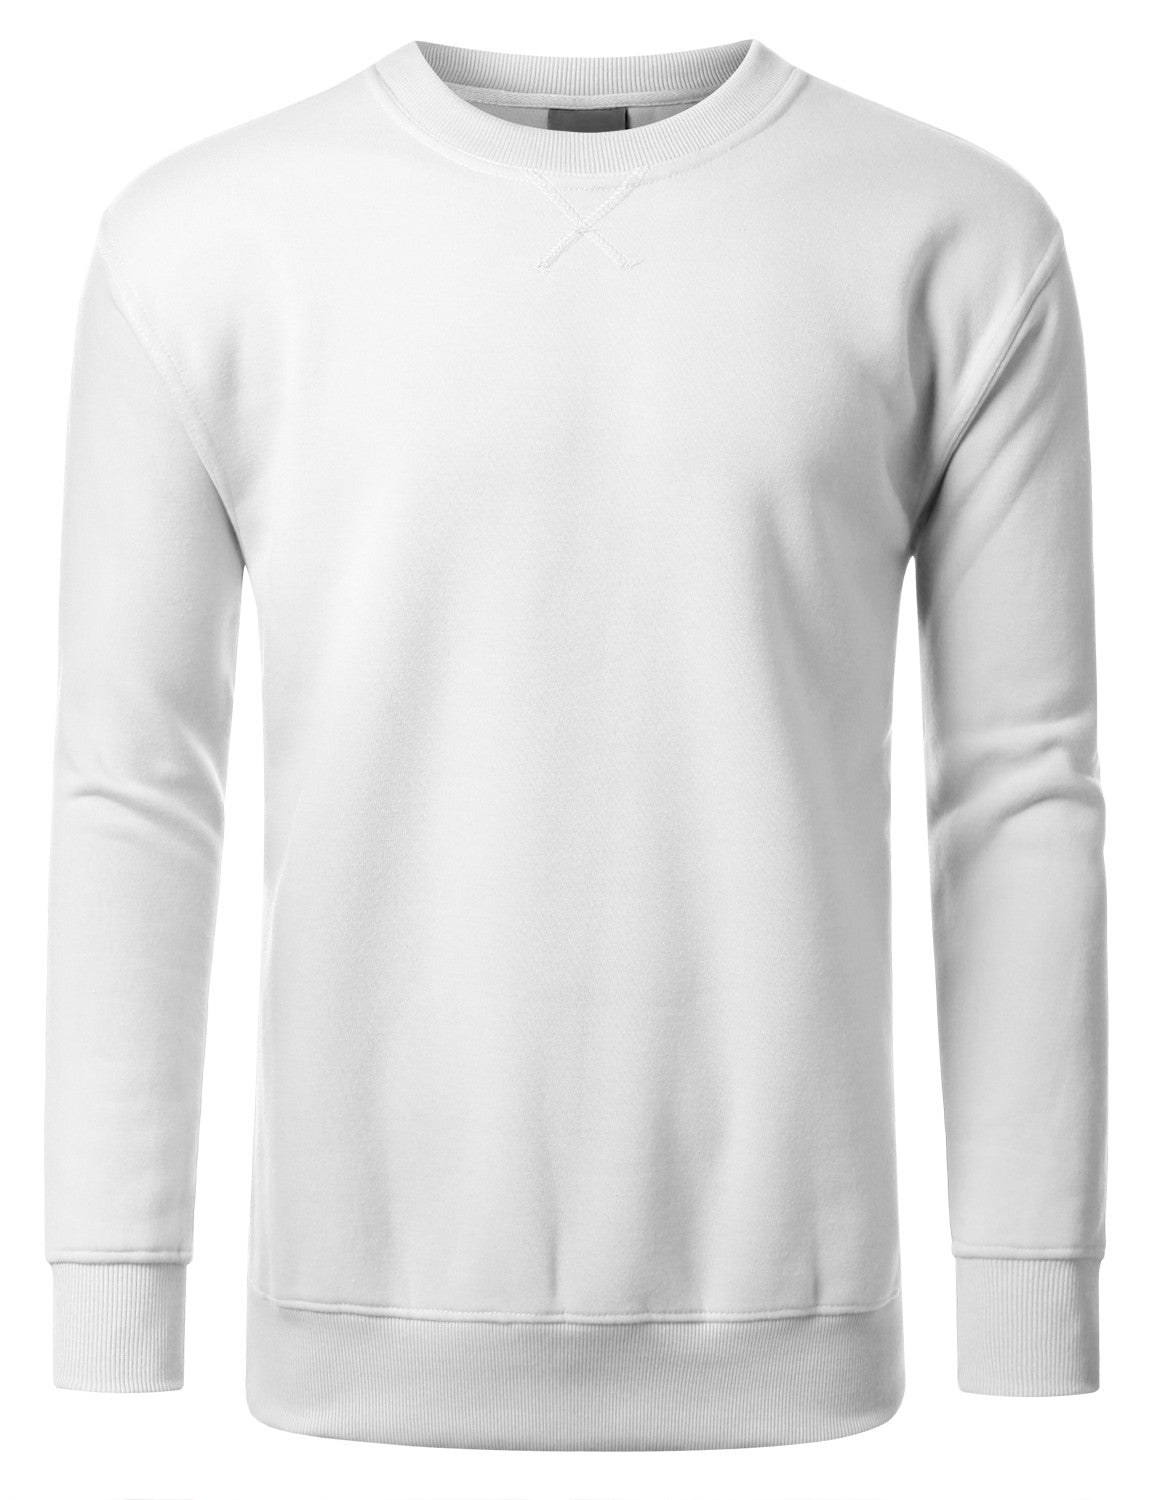 WHITE Basic Crewneck Sweatshirt-Various Colors - URBANCREWS